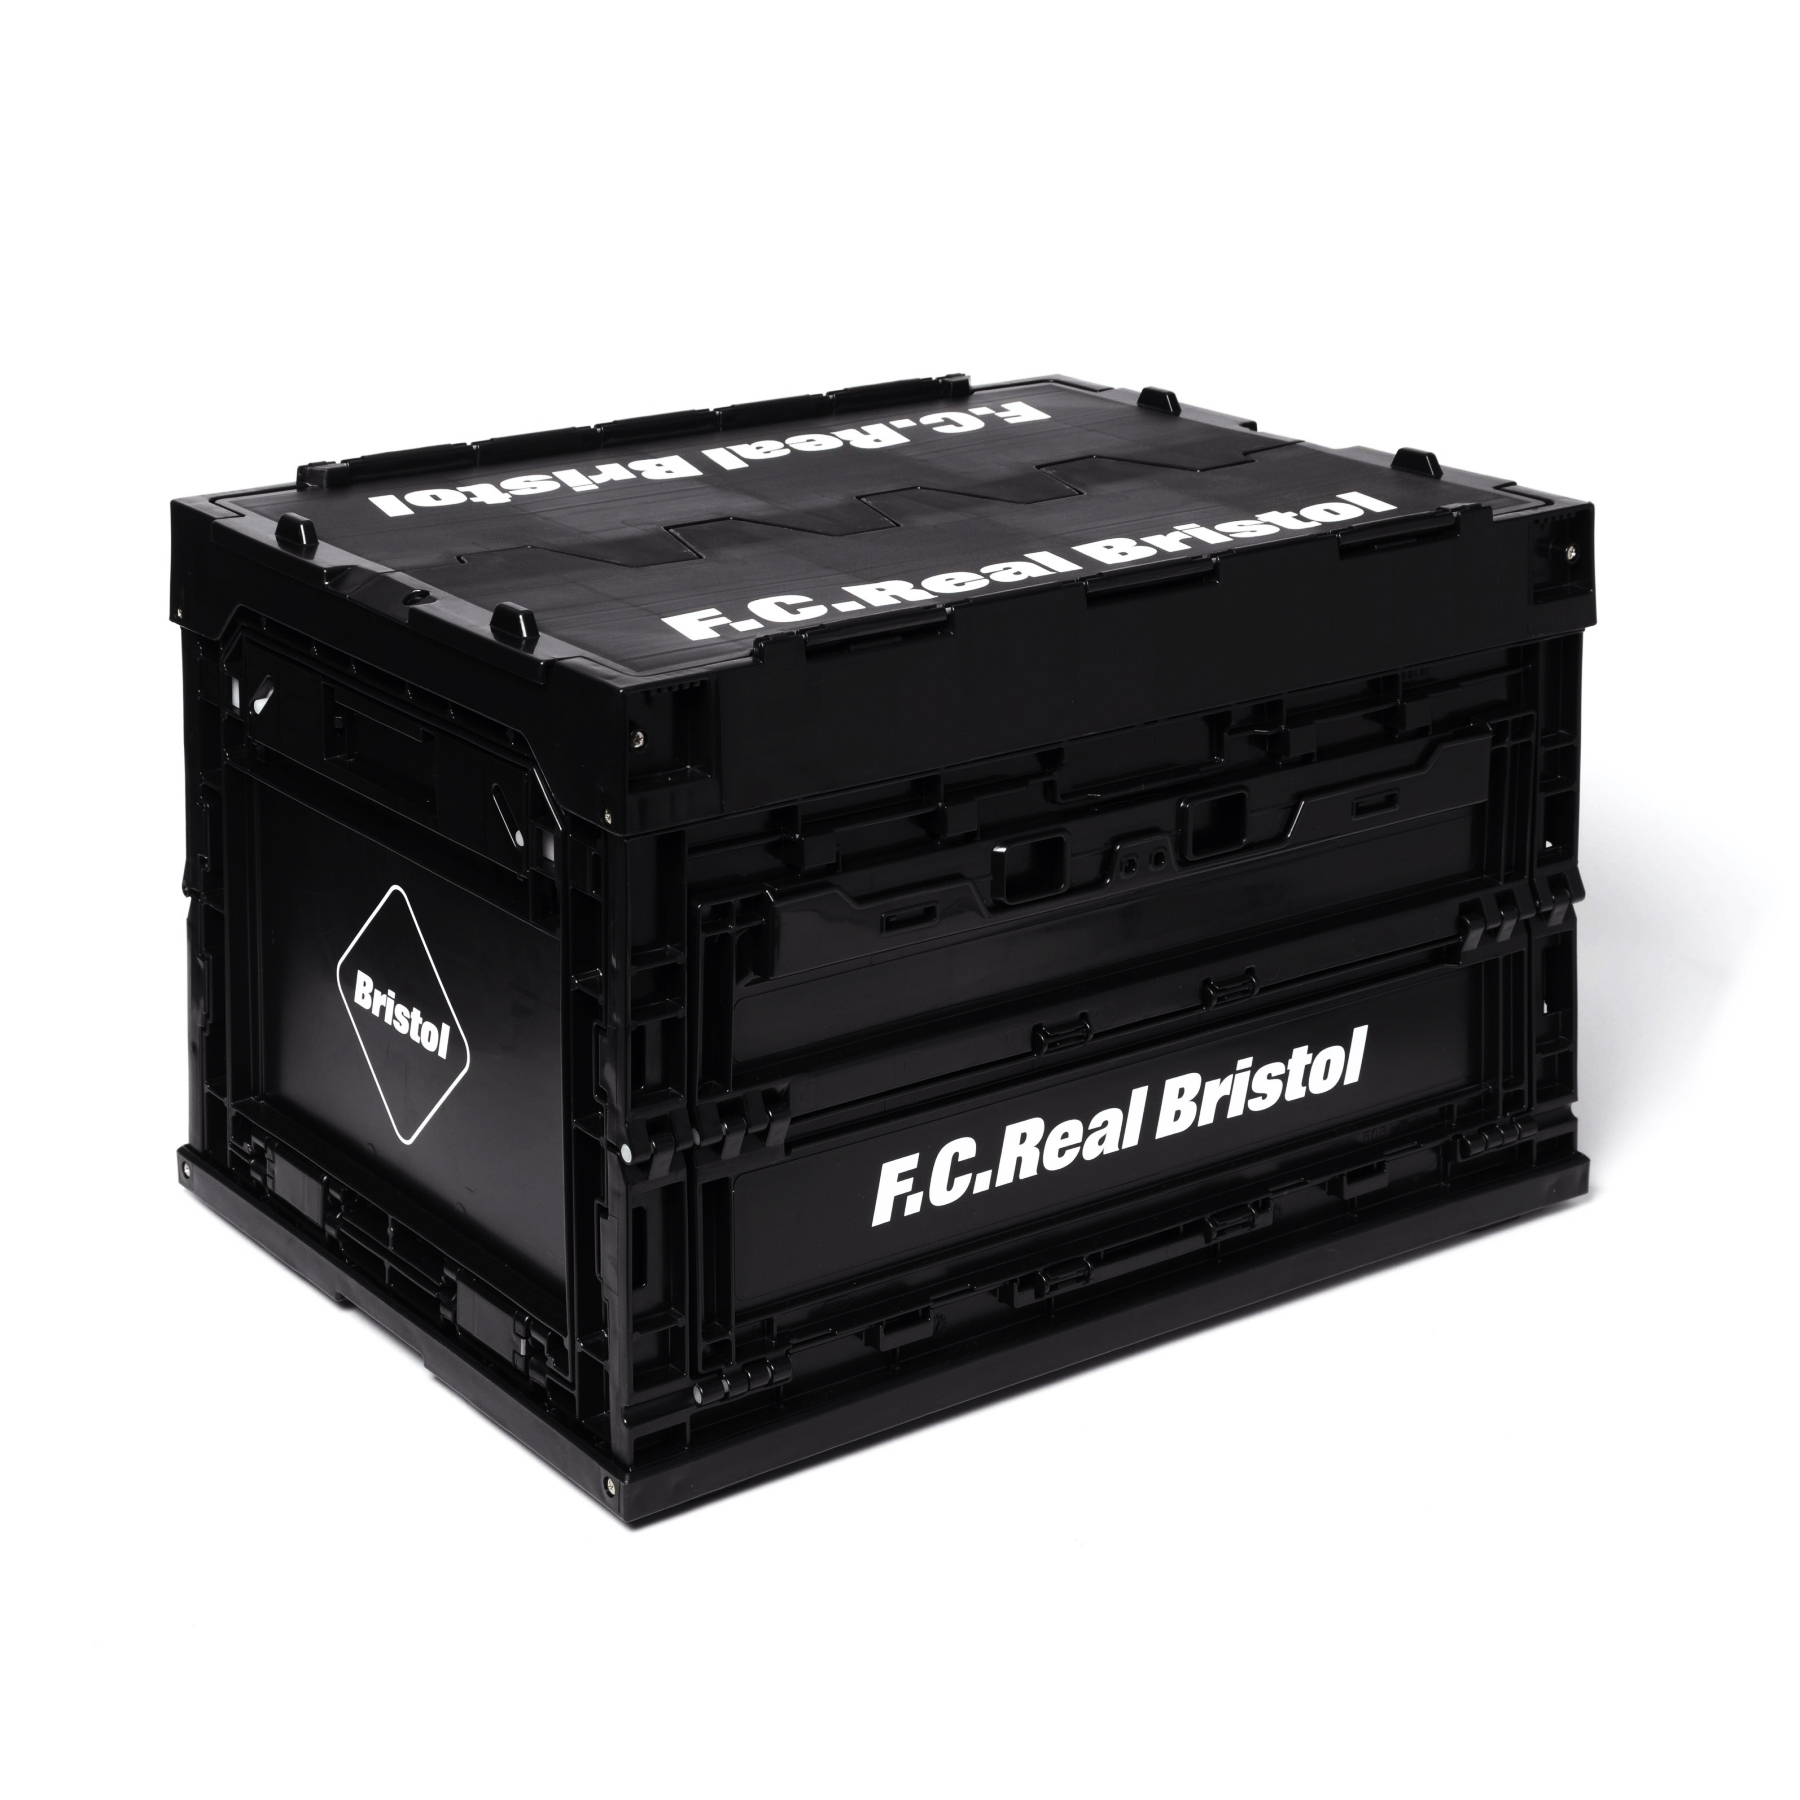 F.C.Real Bristol / FOLDABLE CONTAINER